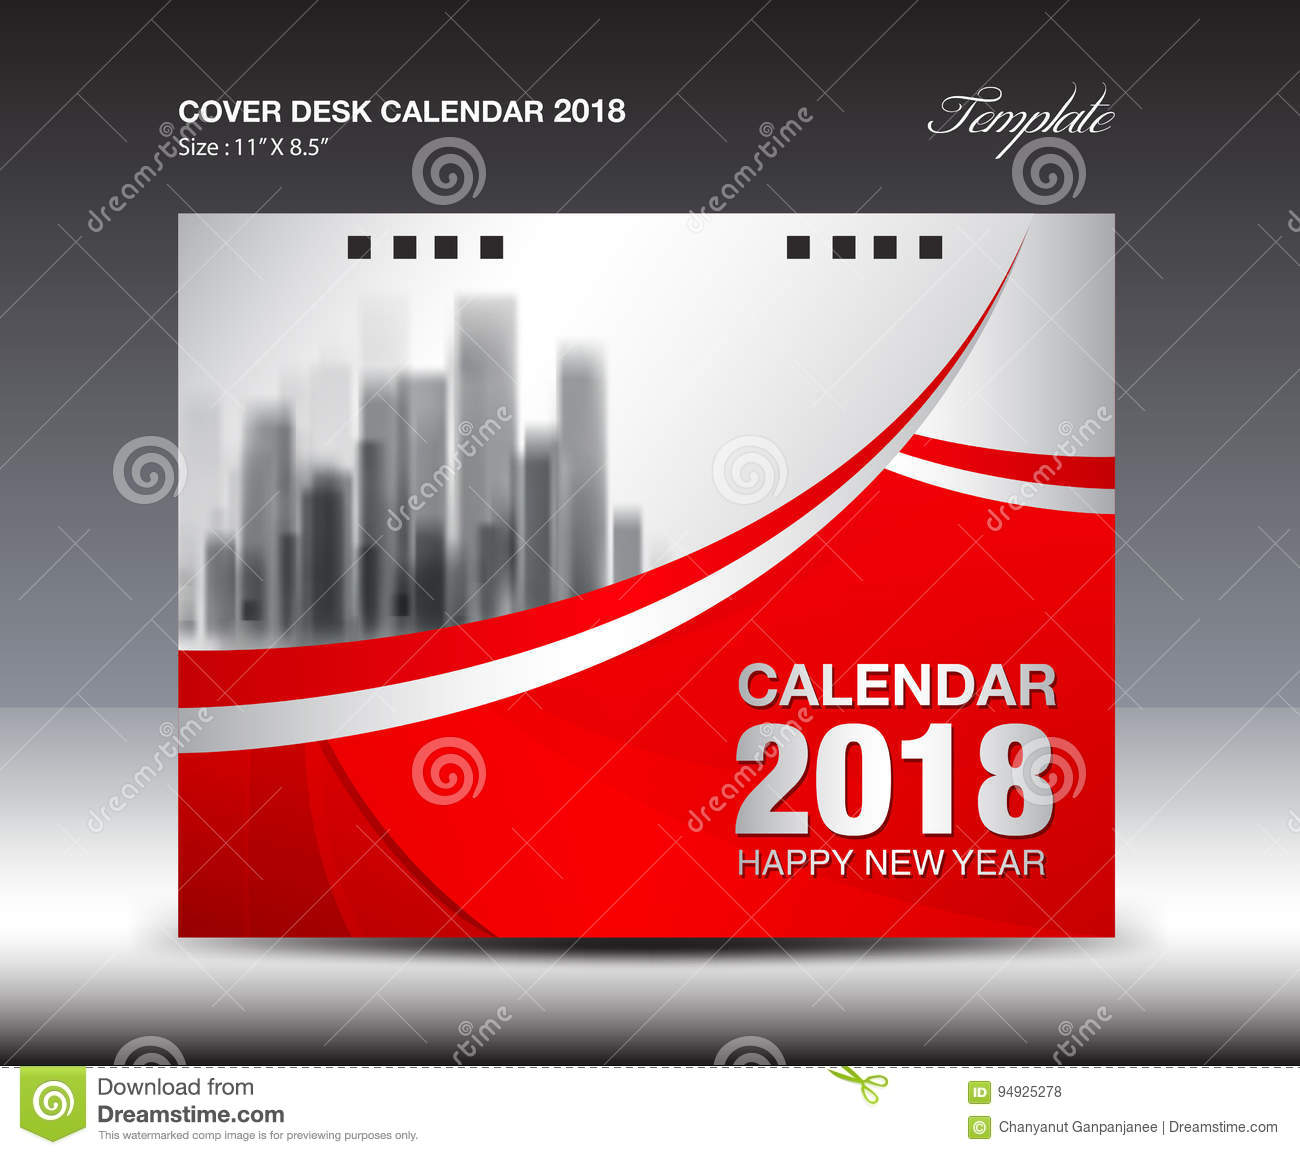 Calendar Cover Design 2014 : Red cover desk calendar year template design stock